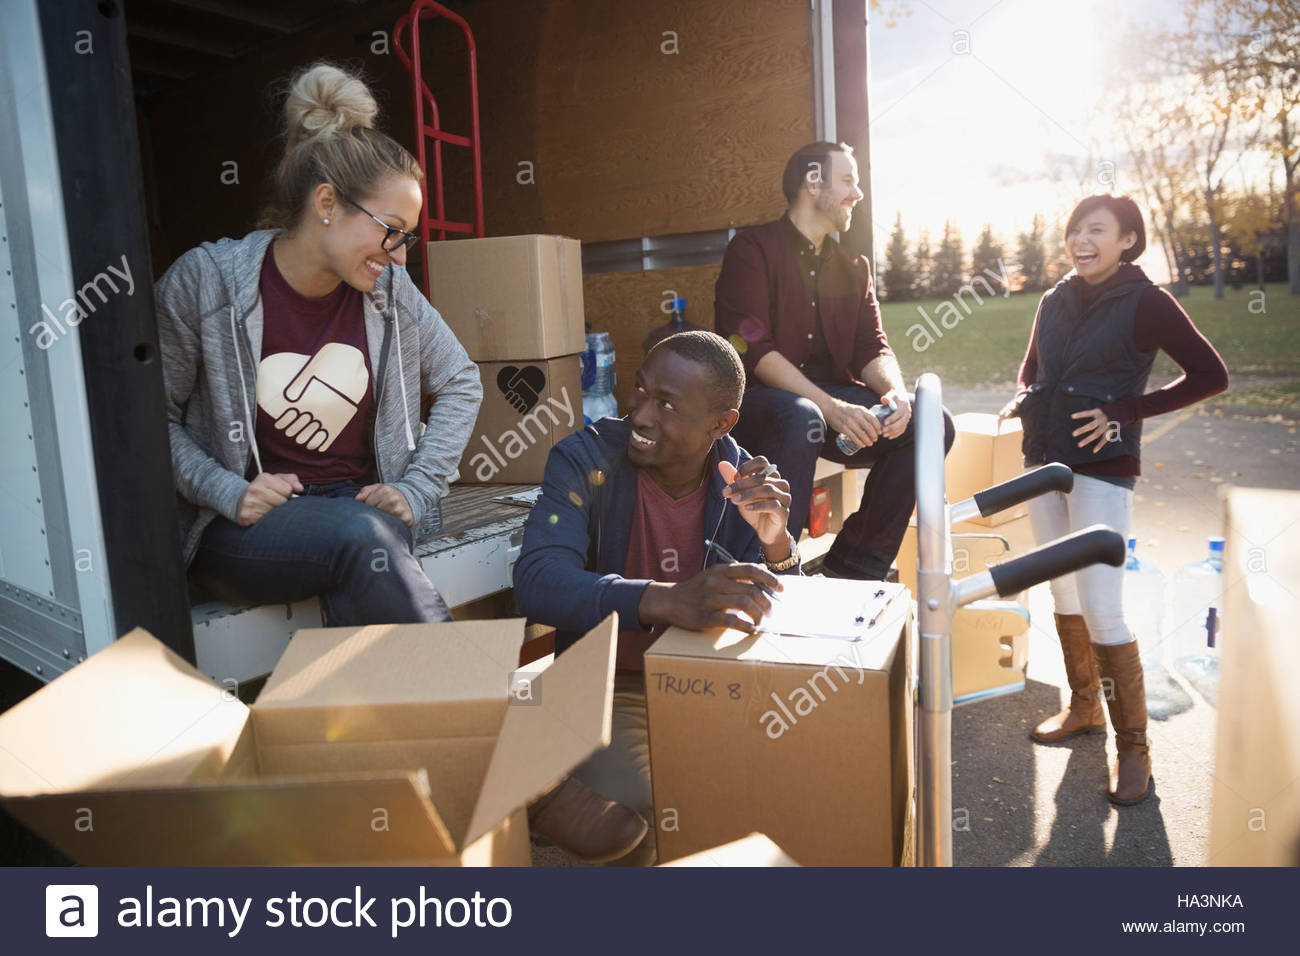 Volunteers talking among cardboard boxes at back of truck - Stock Image